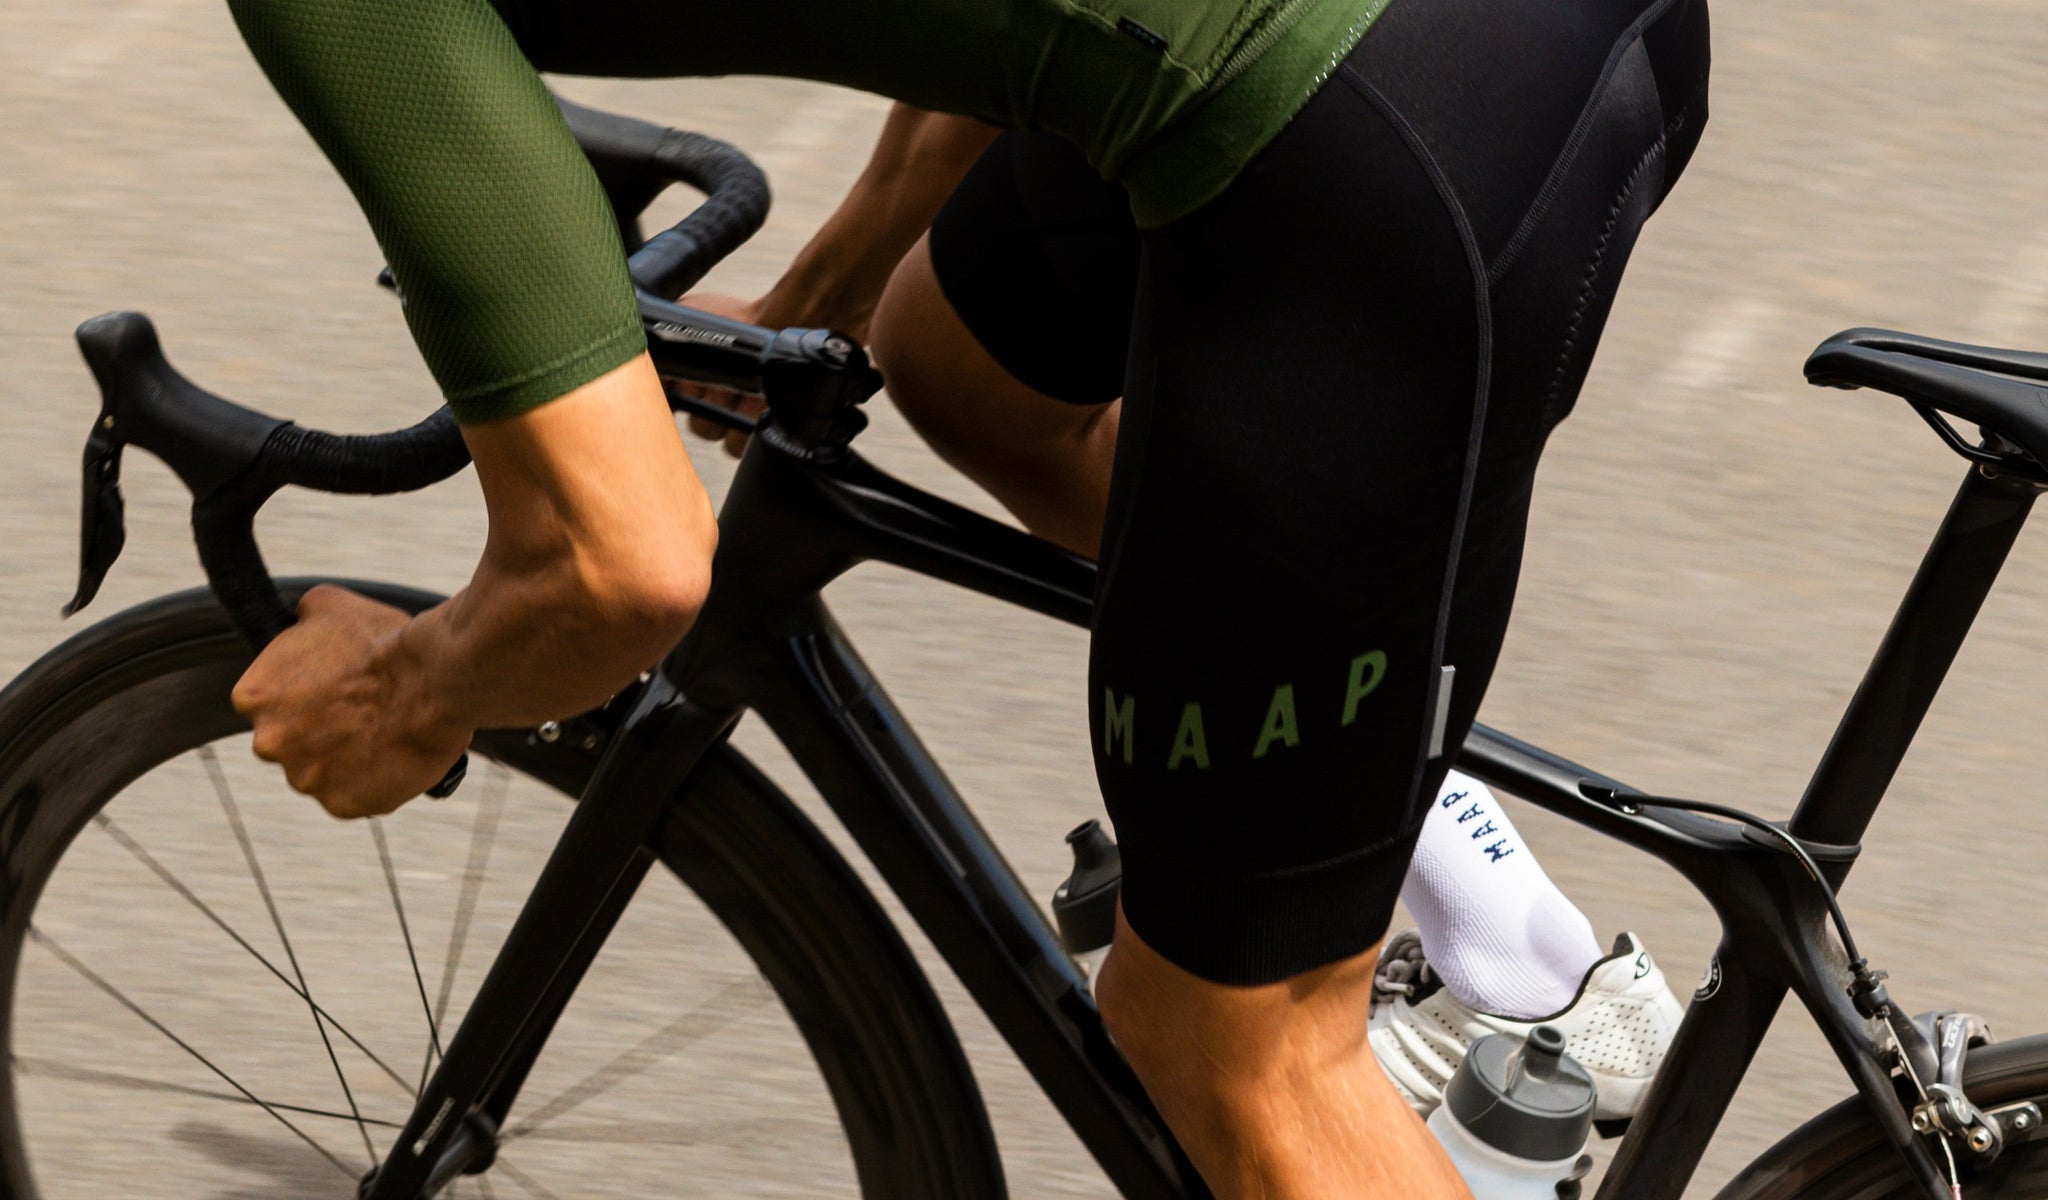 MAAP Team Cycling Bib Shorts in Black/Military Green for riding in warm weather conditions.